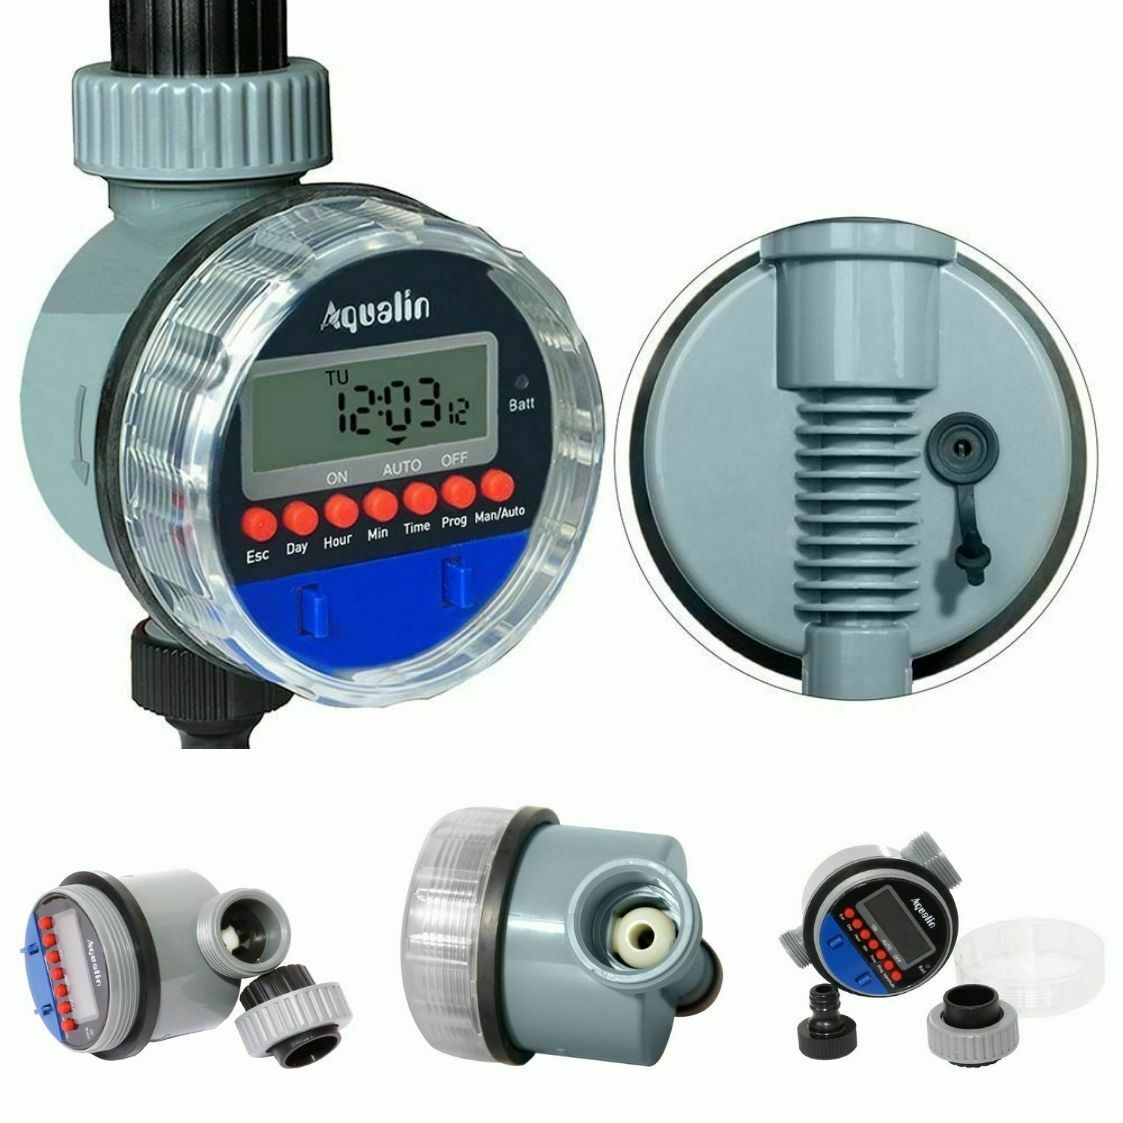 Automatic Electronic Ball Valve Water Timer Home Waterproof Garden Watering Time